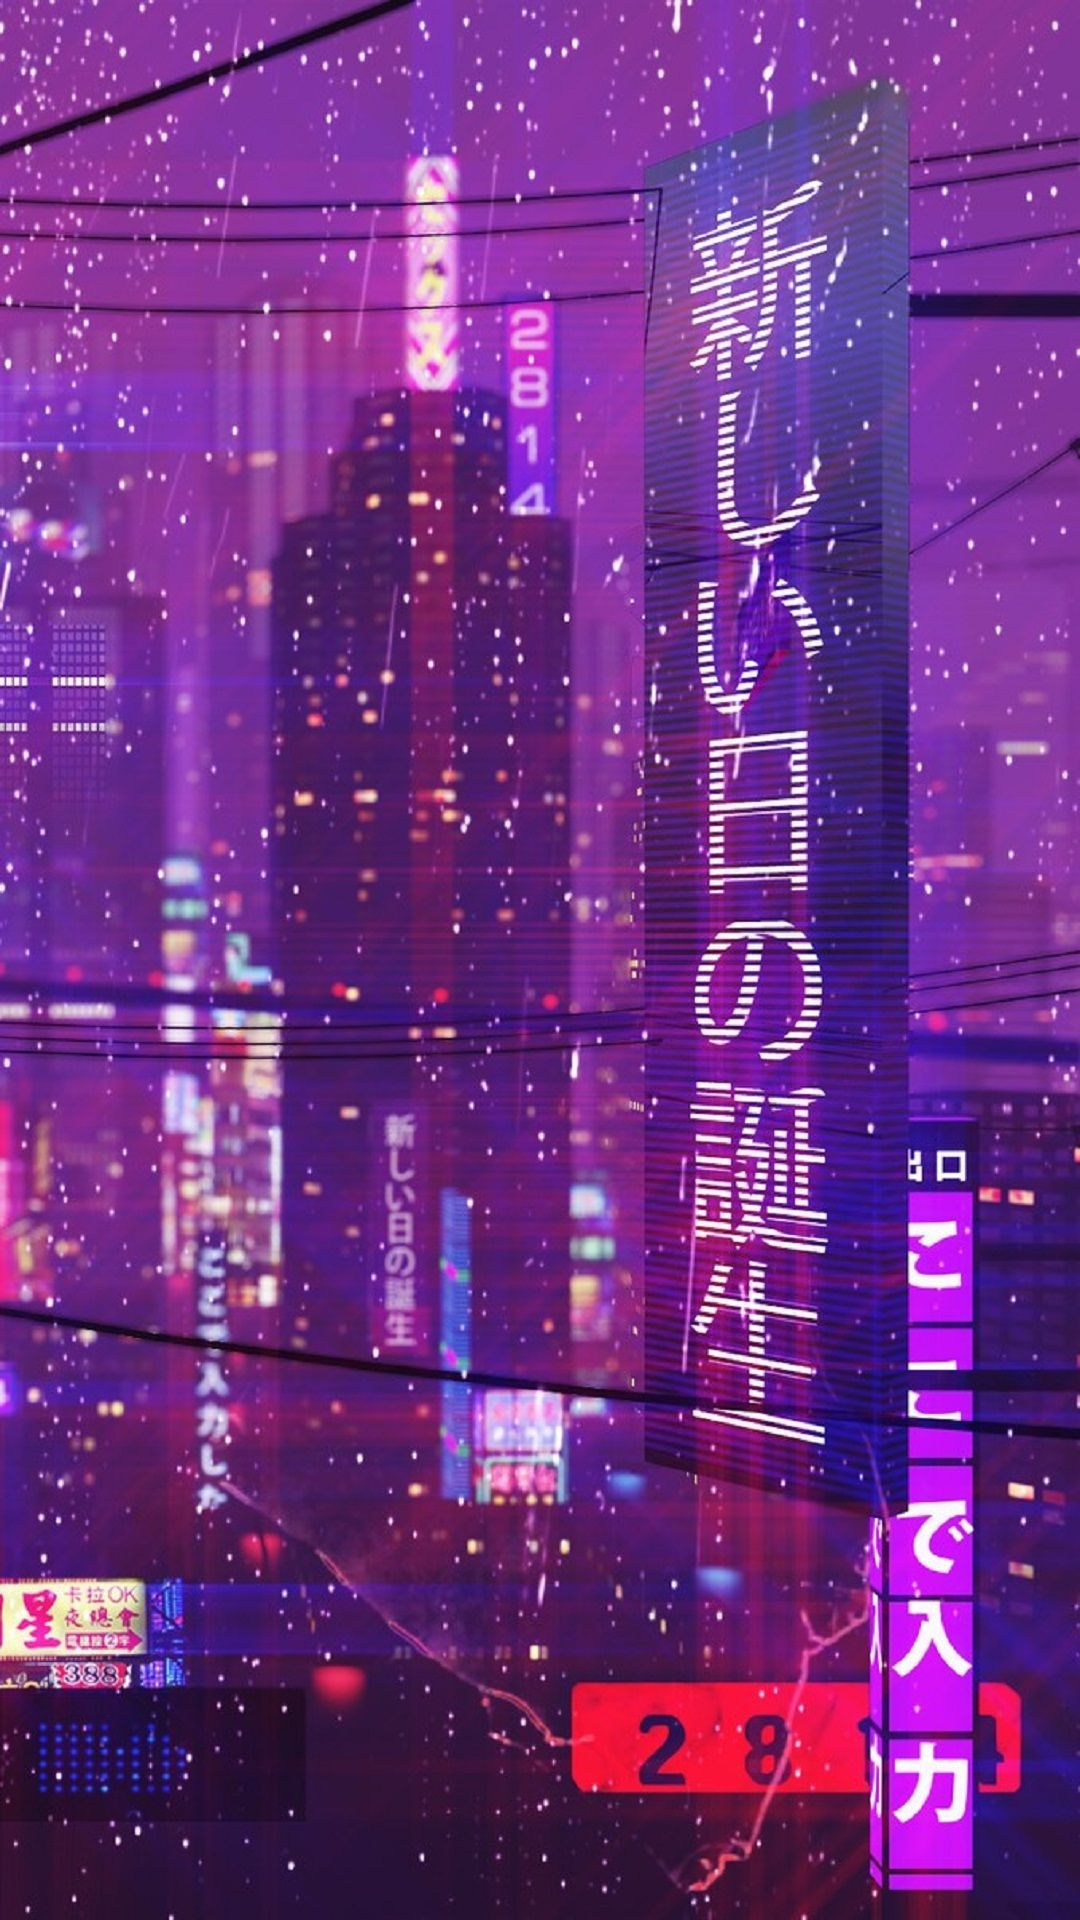 80s Aesthetic Wallpaper 107 images in Collection Page 3 1080x1920